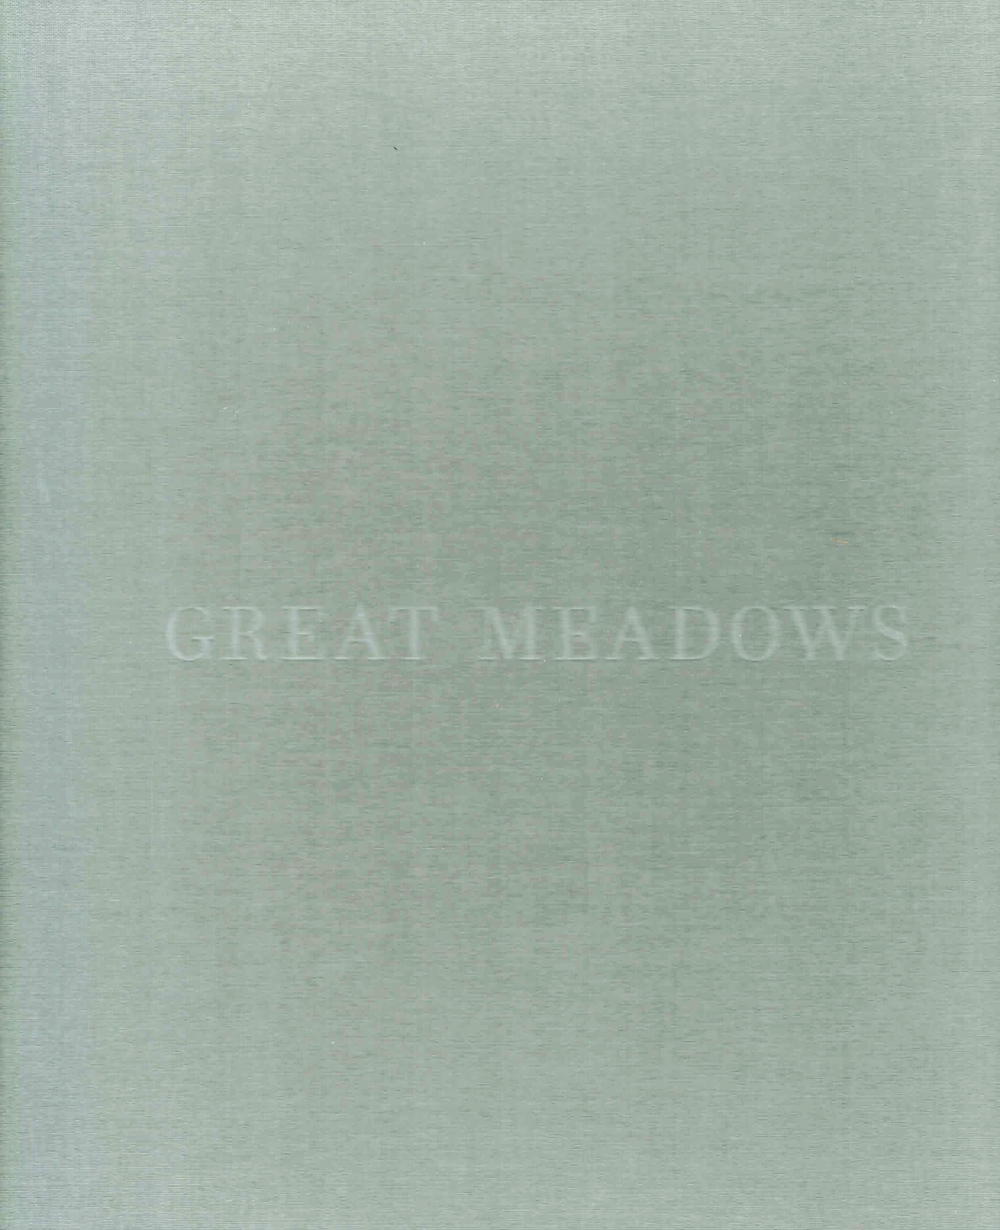 GREAT MEADOWS: THE MAKING OF HERE  06/14